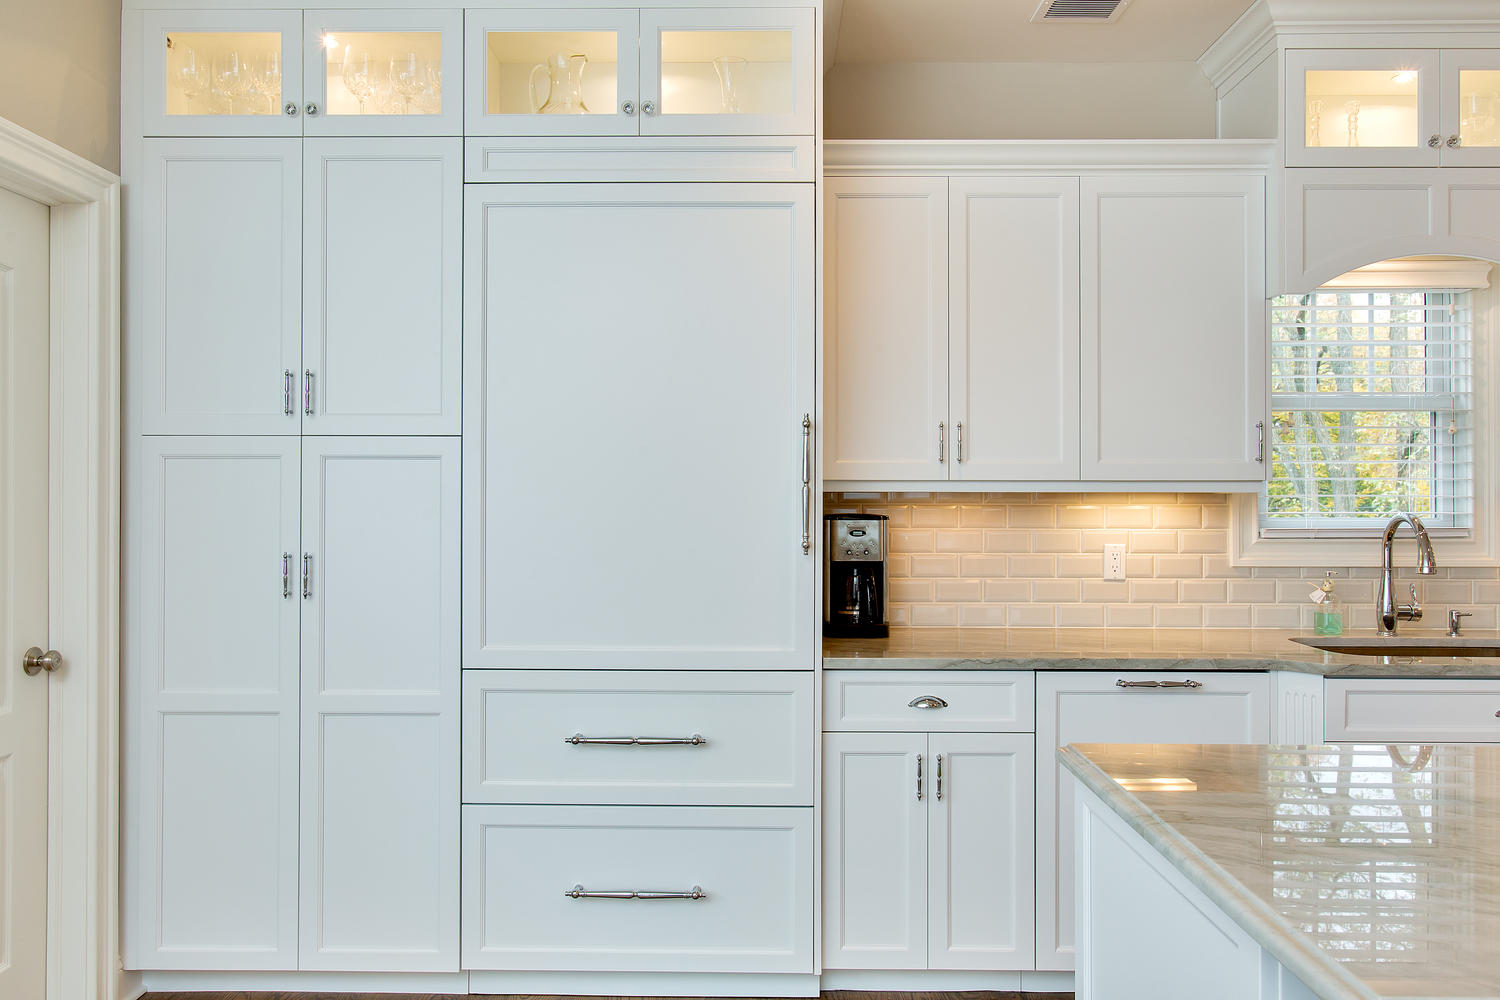 Integrated Appliances | Design Line Kitchens in Sea Girt, NJ